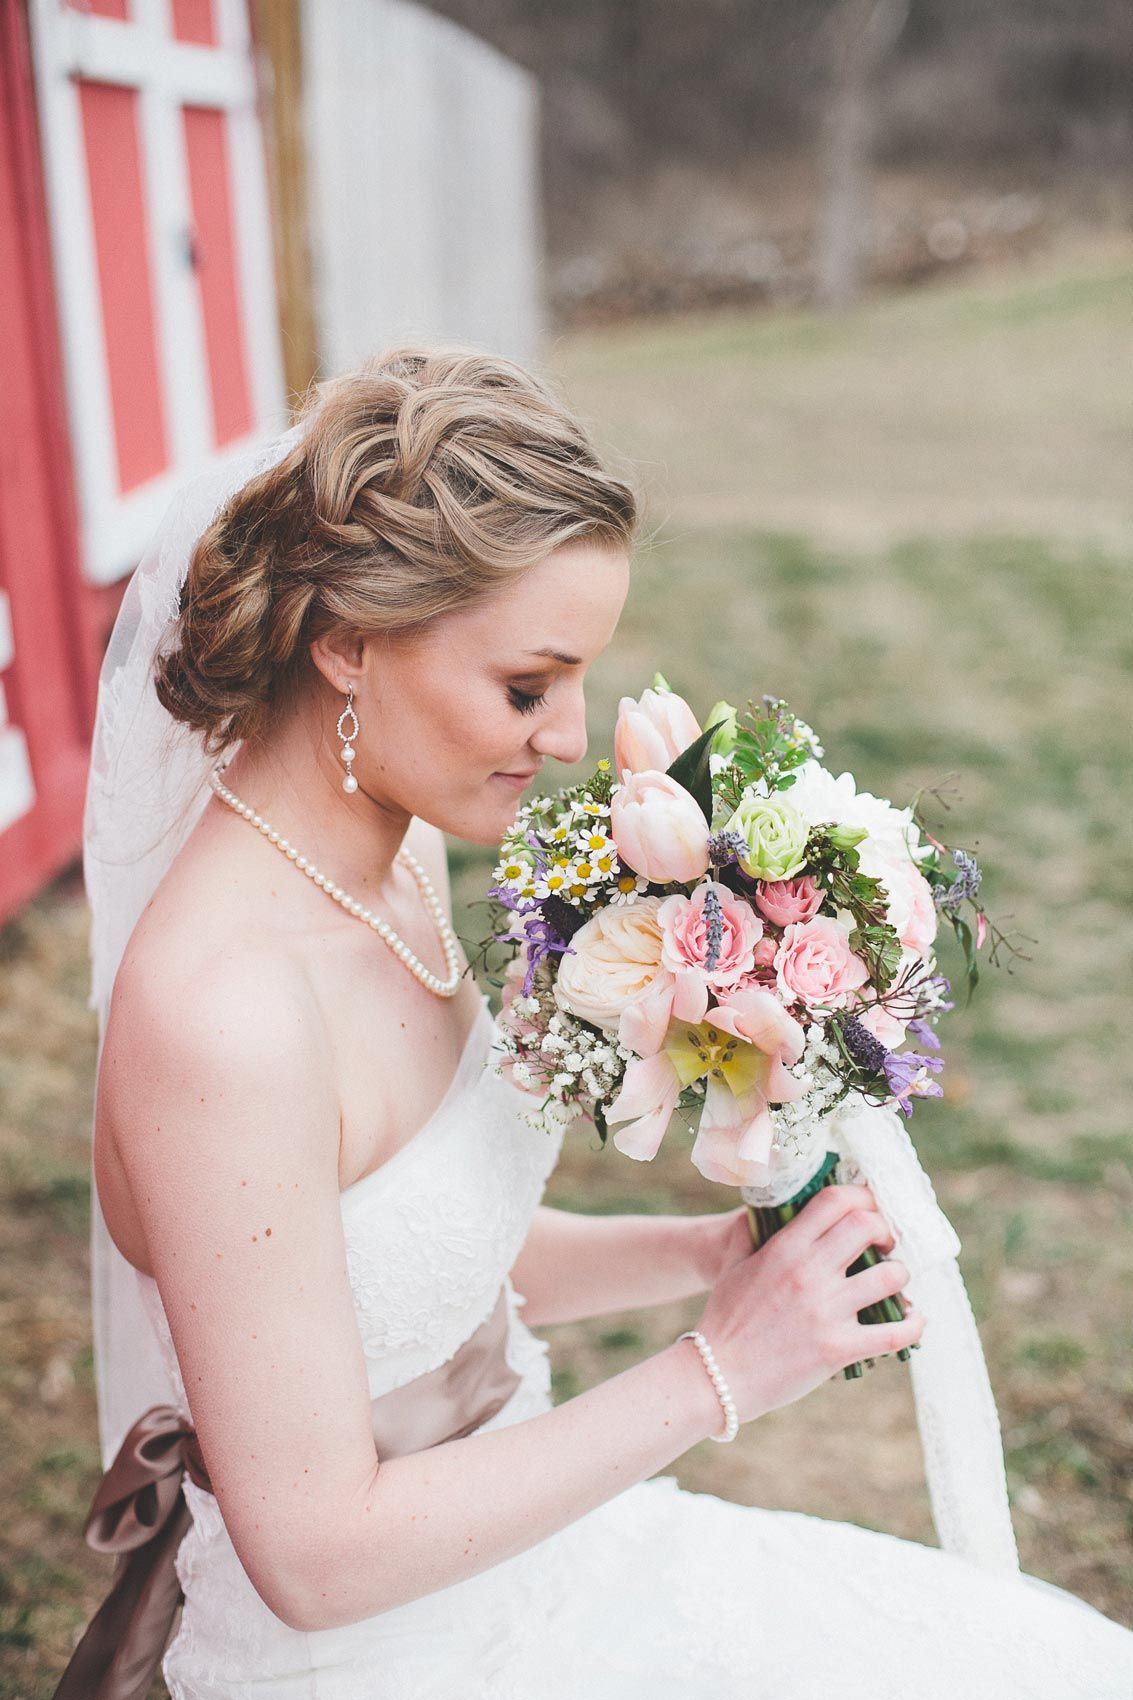 Country Side Wedding | Bridal Look | Bridal Bouquet | Forever Bride | Joanna Day Photography | Minneapolis, MN | www.foreverbride.com